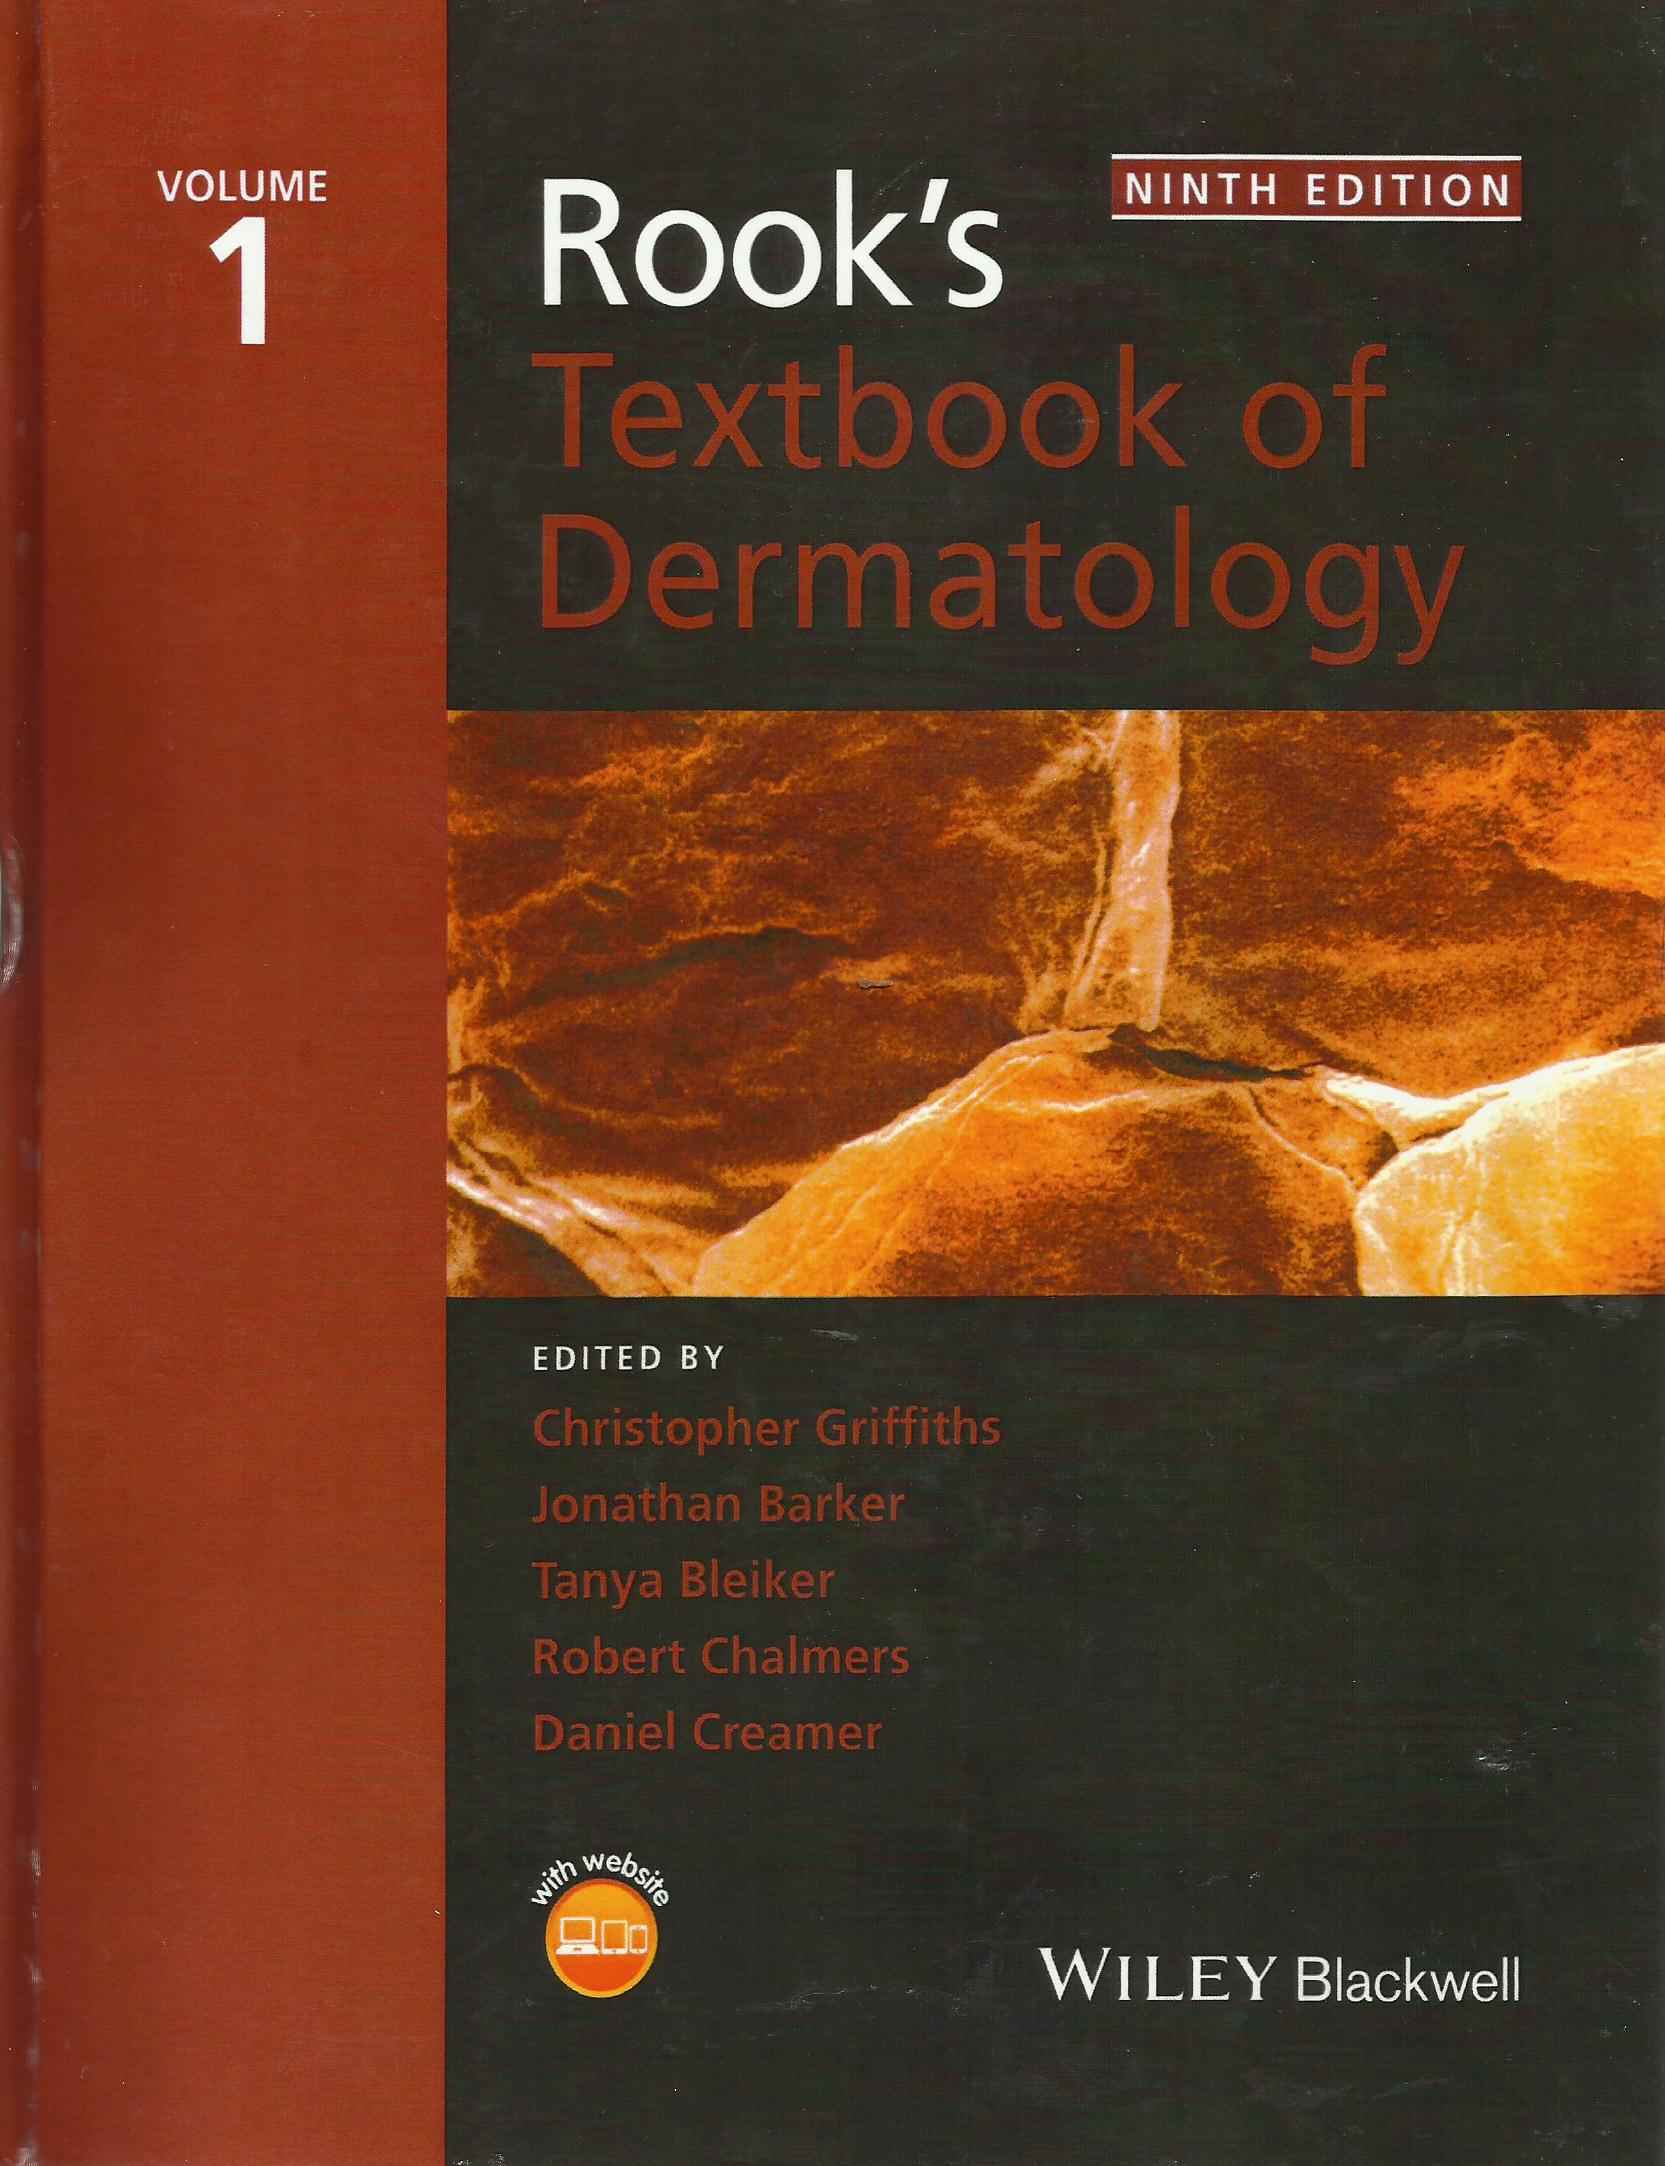 Rook's Textbook of Dermatology vol.1